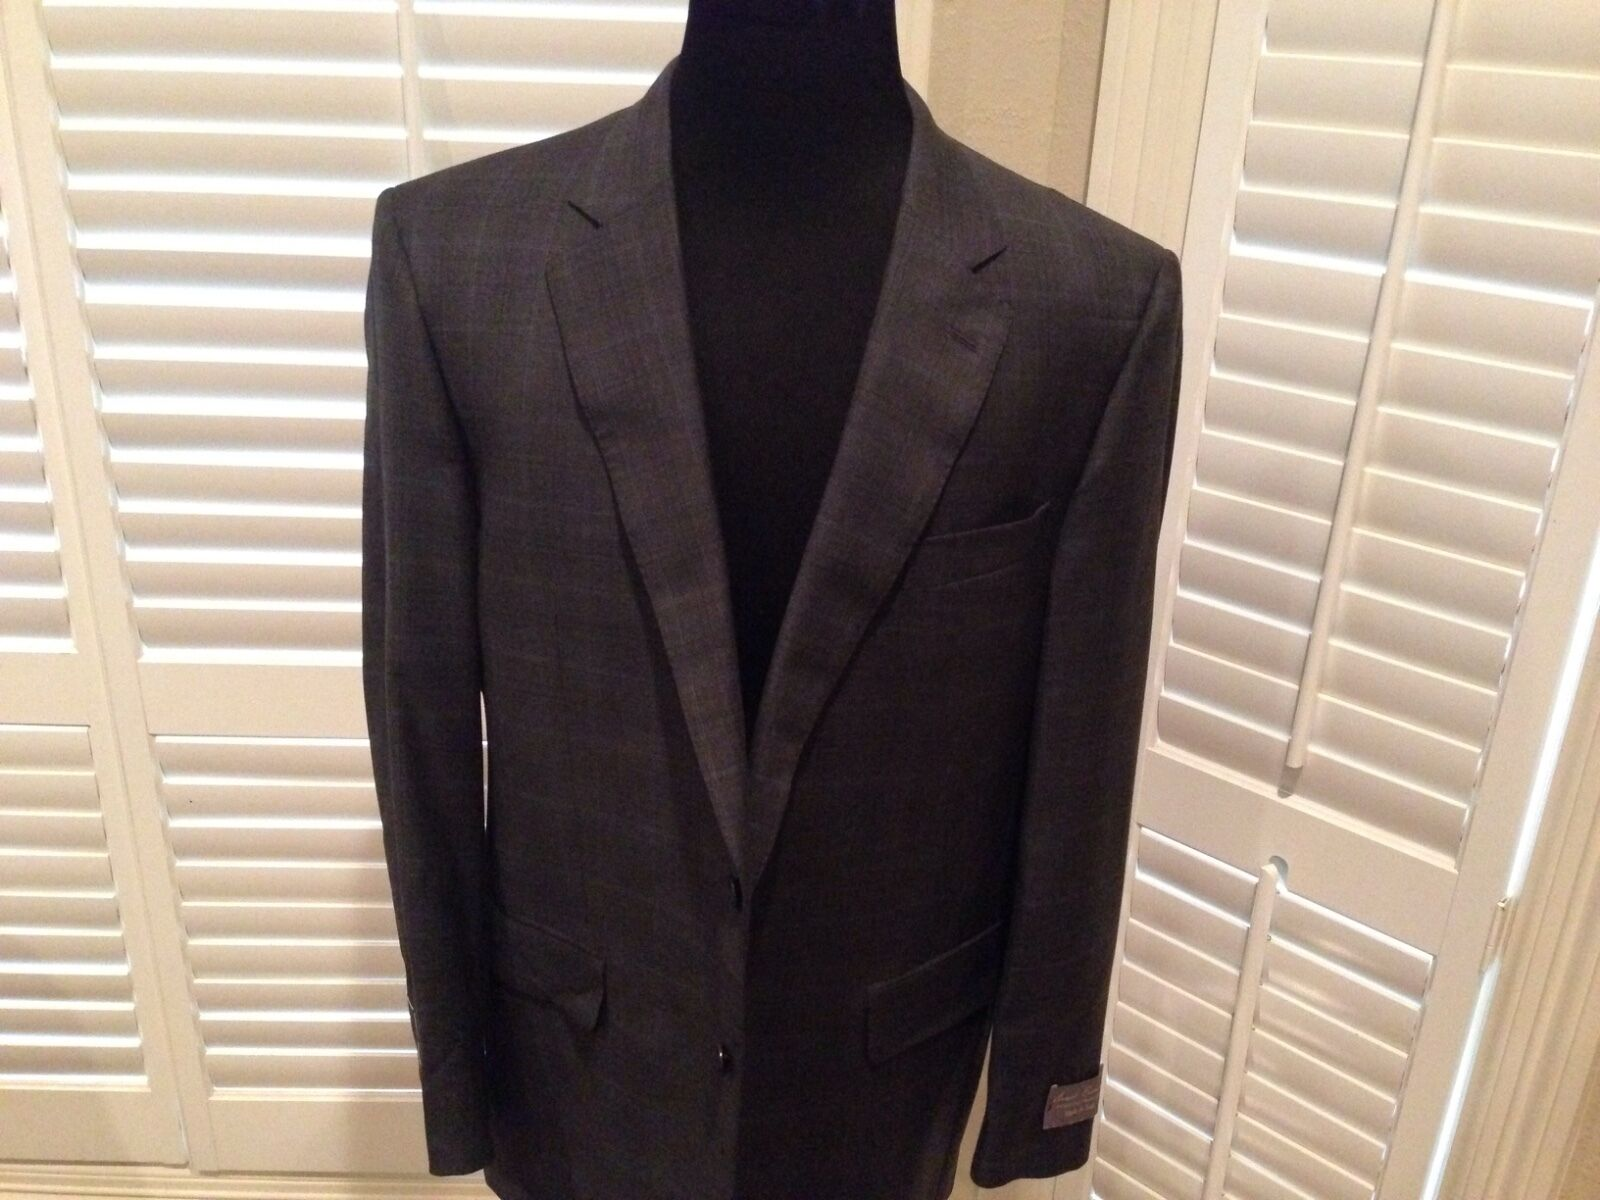 LGold Piana Wool Suit  Daniel cremieux Größe 46 R hand  Made in